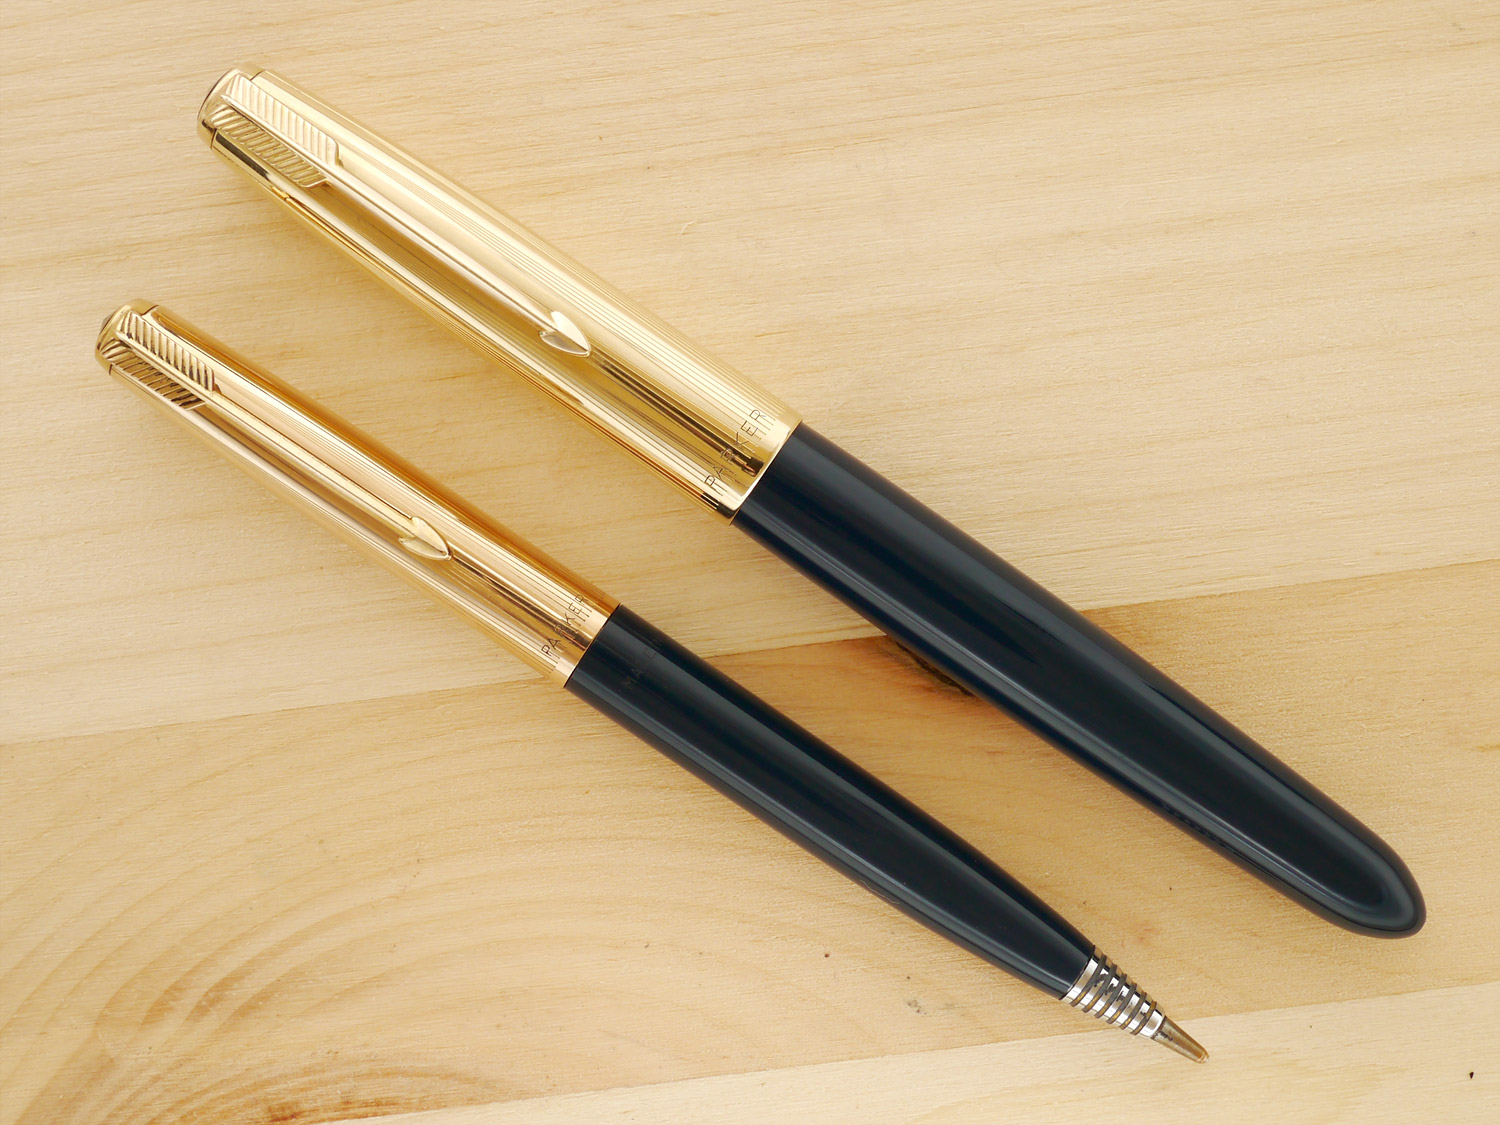 Parker 51 Aerometric Pen and Pencil Set, Midnight Blue, F, capped, with the pencil